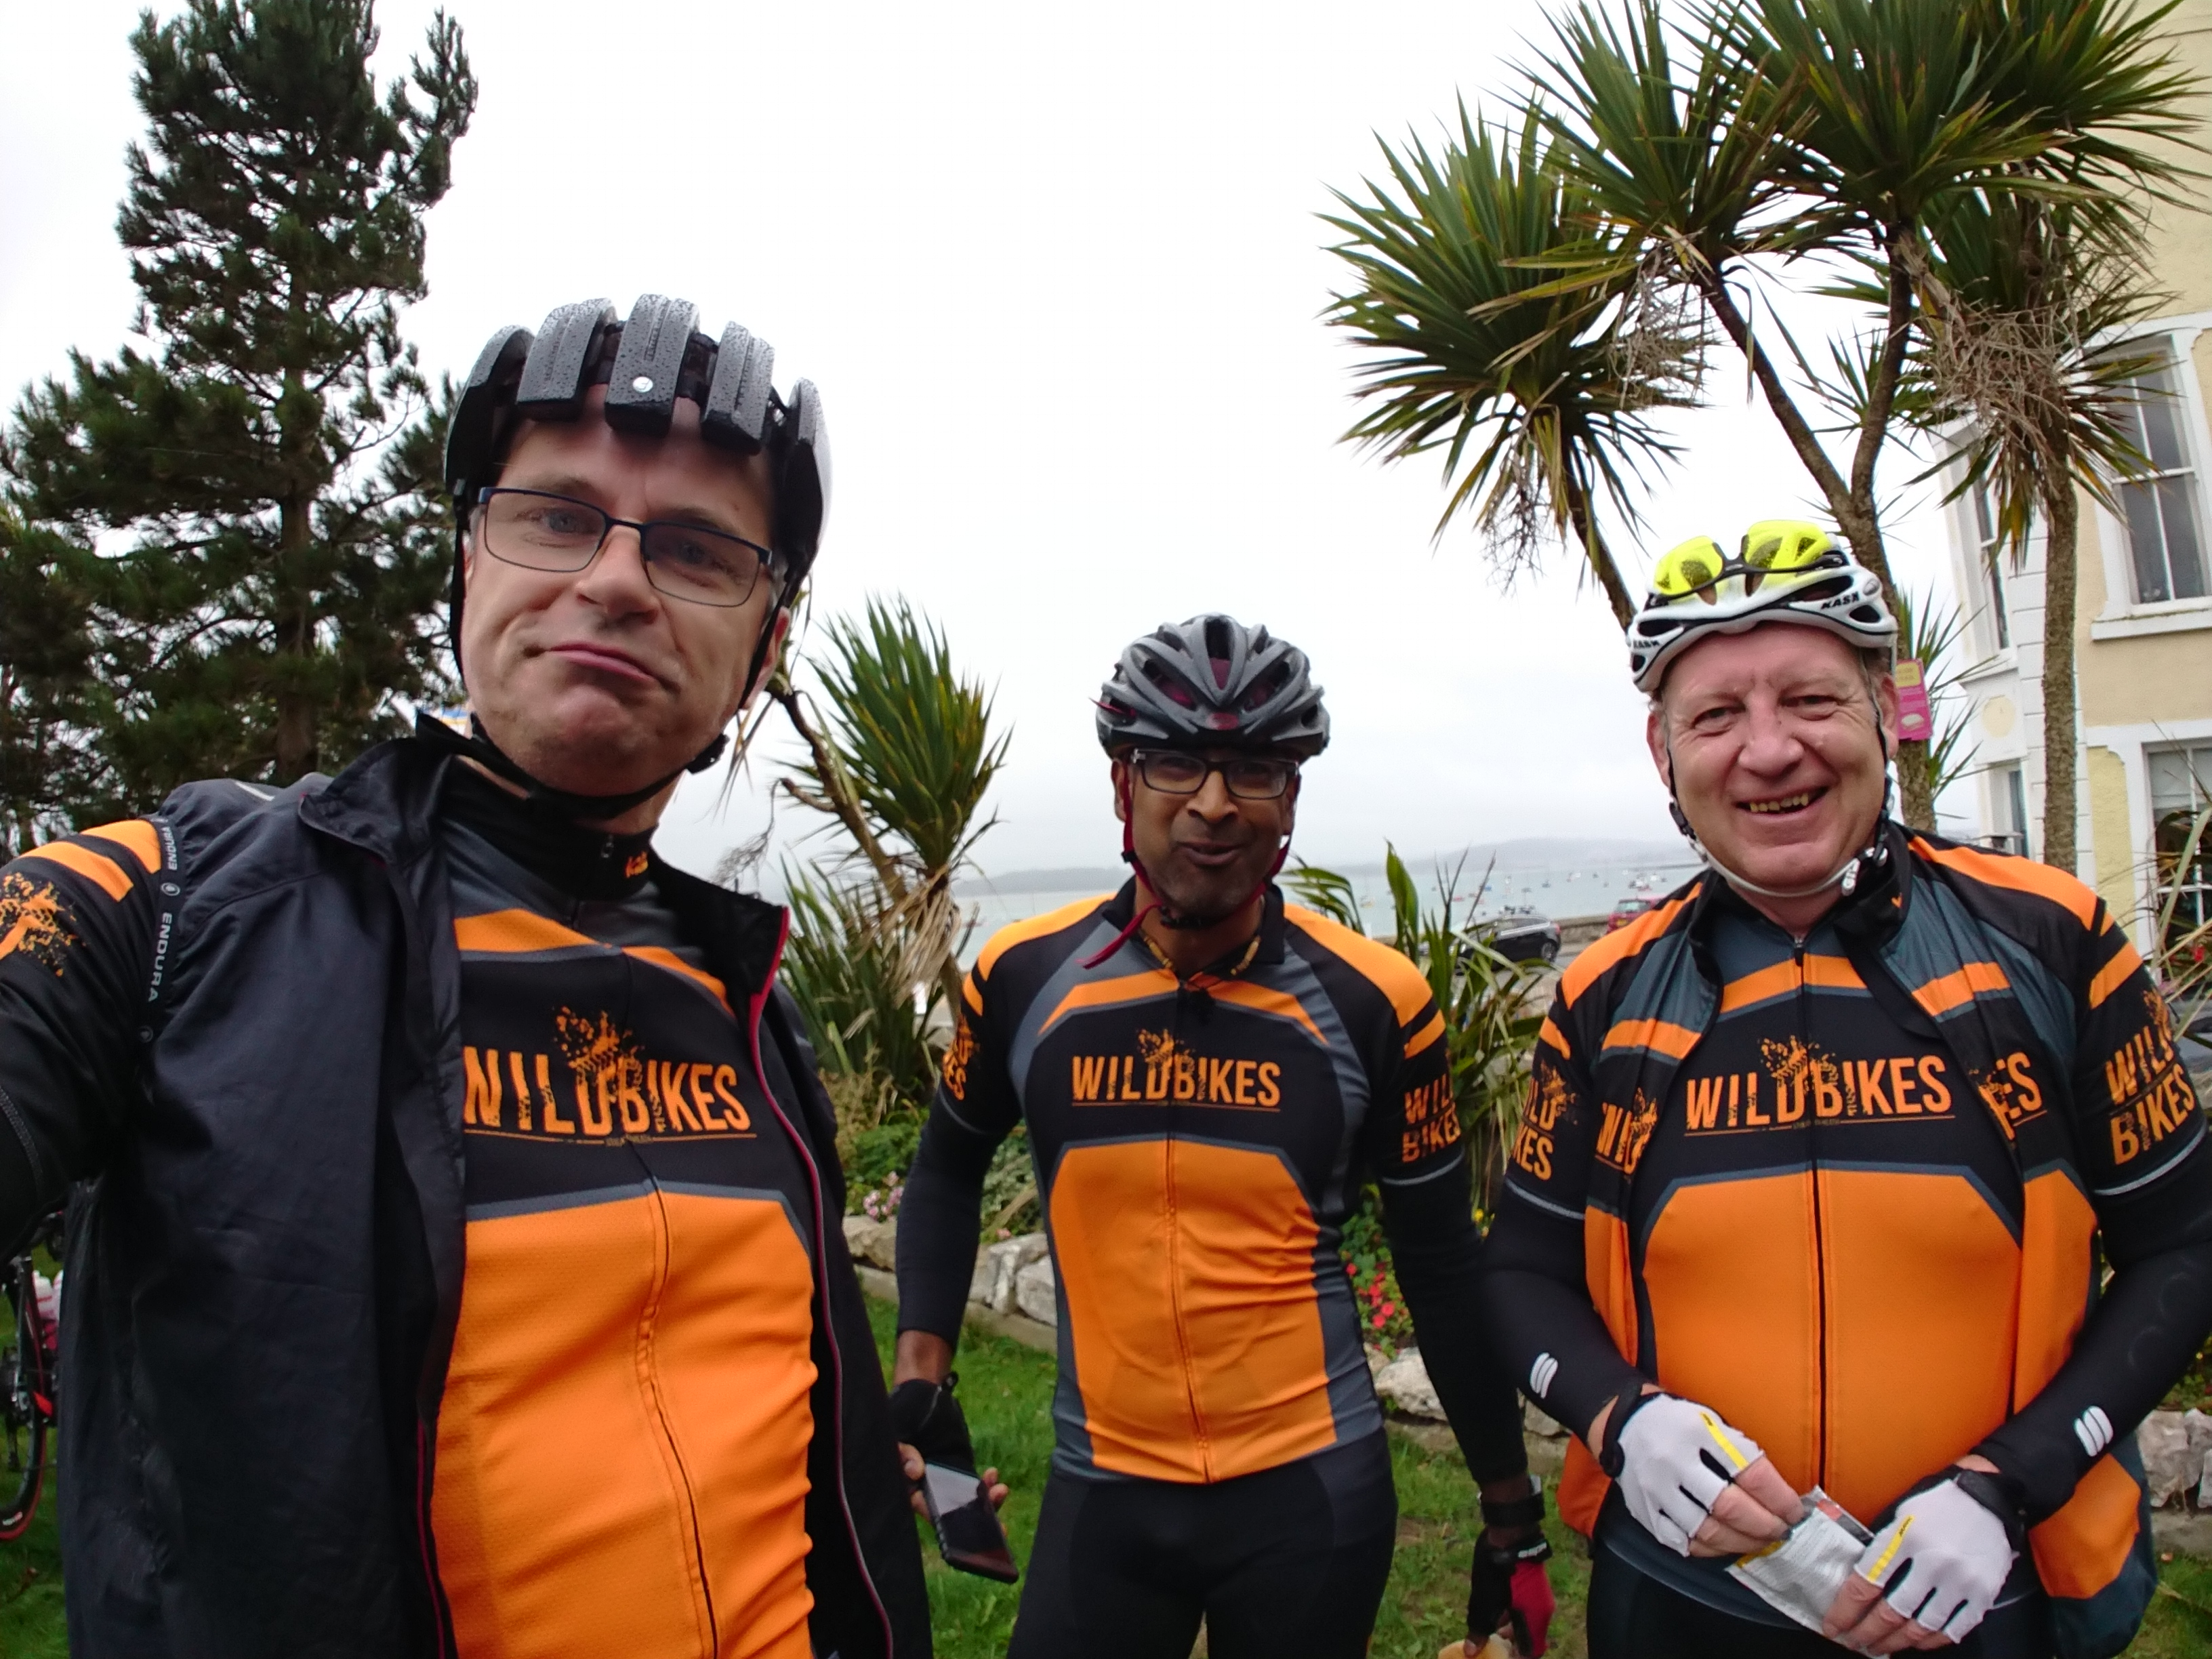 A brief sighting of all three Wild Bikers on the Tour de Mon sportive!